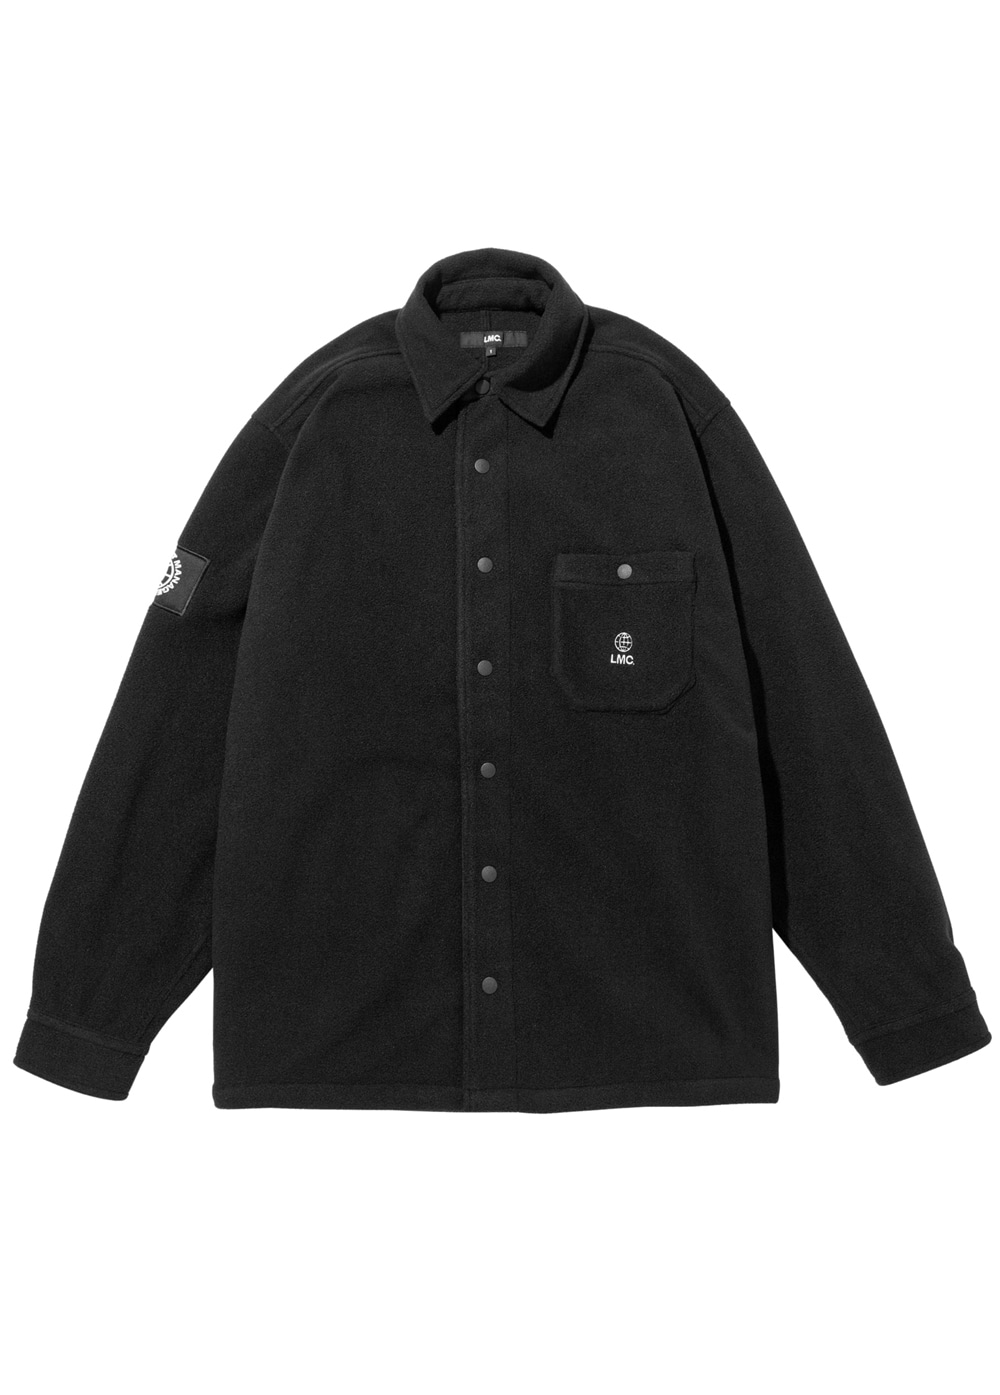 LMC FLEECE SNAP SHIRT black